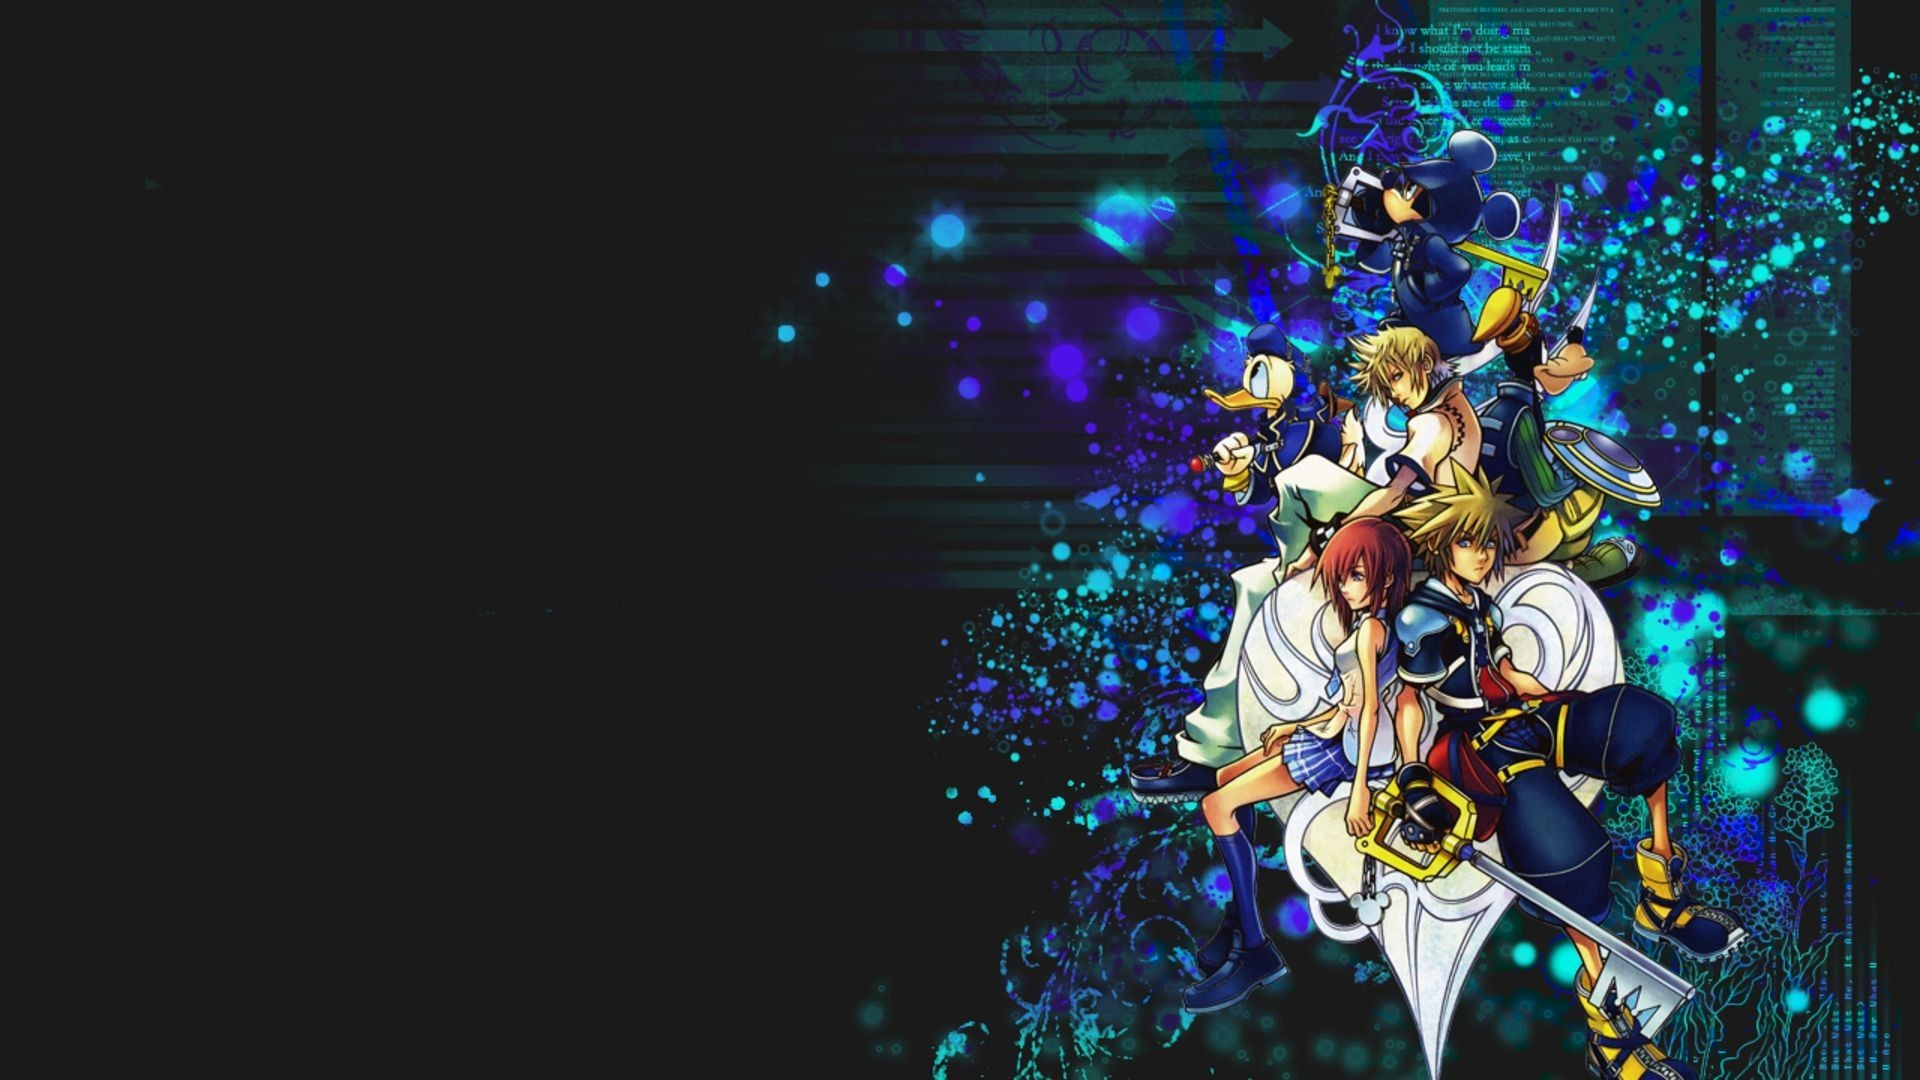 Kingdom Hearts 3 Wallpaper 67178 1920x1080px